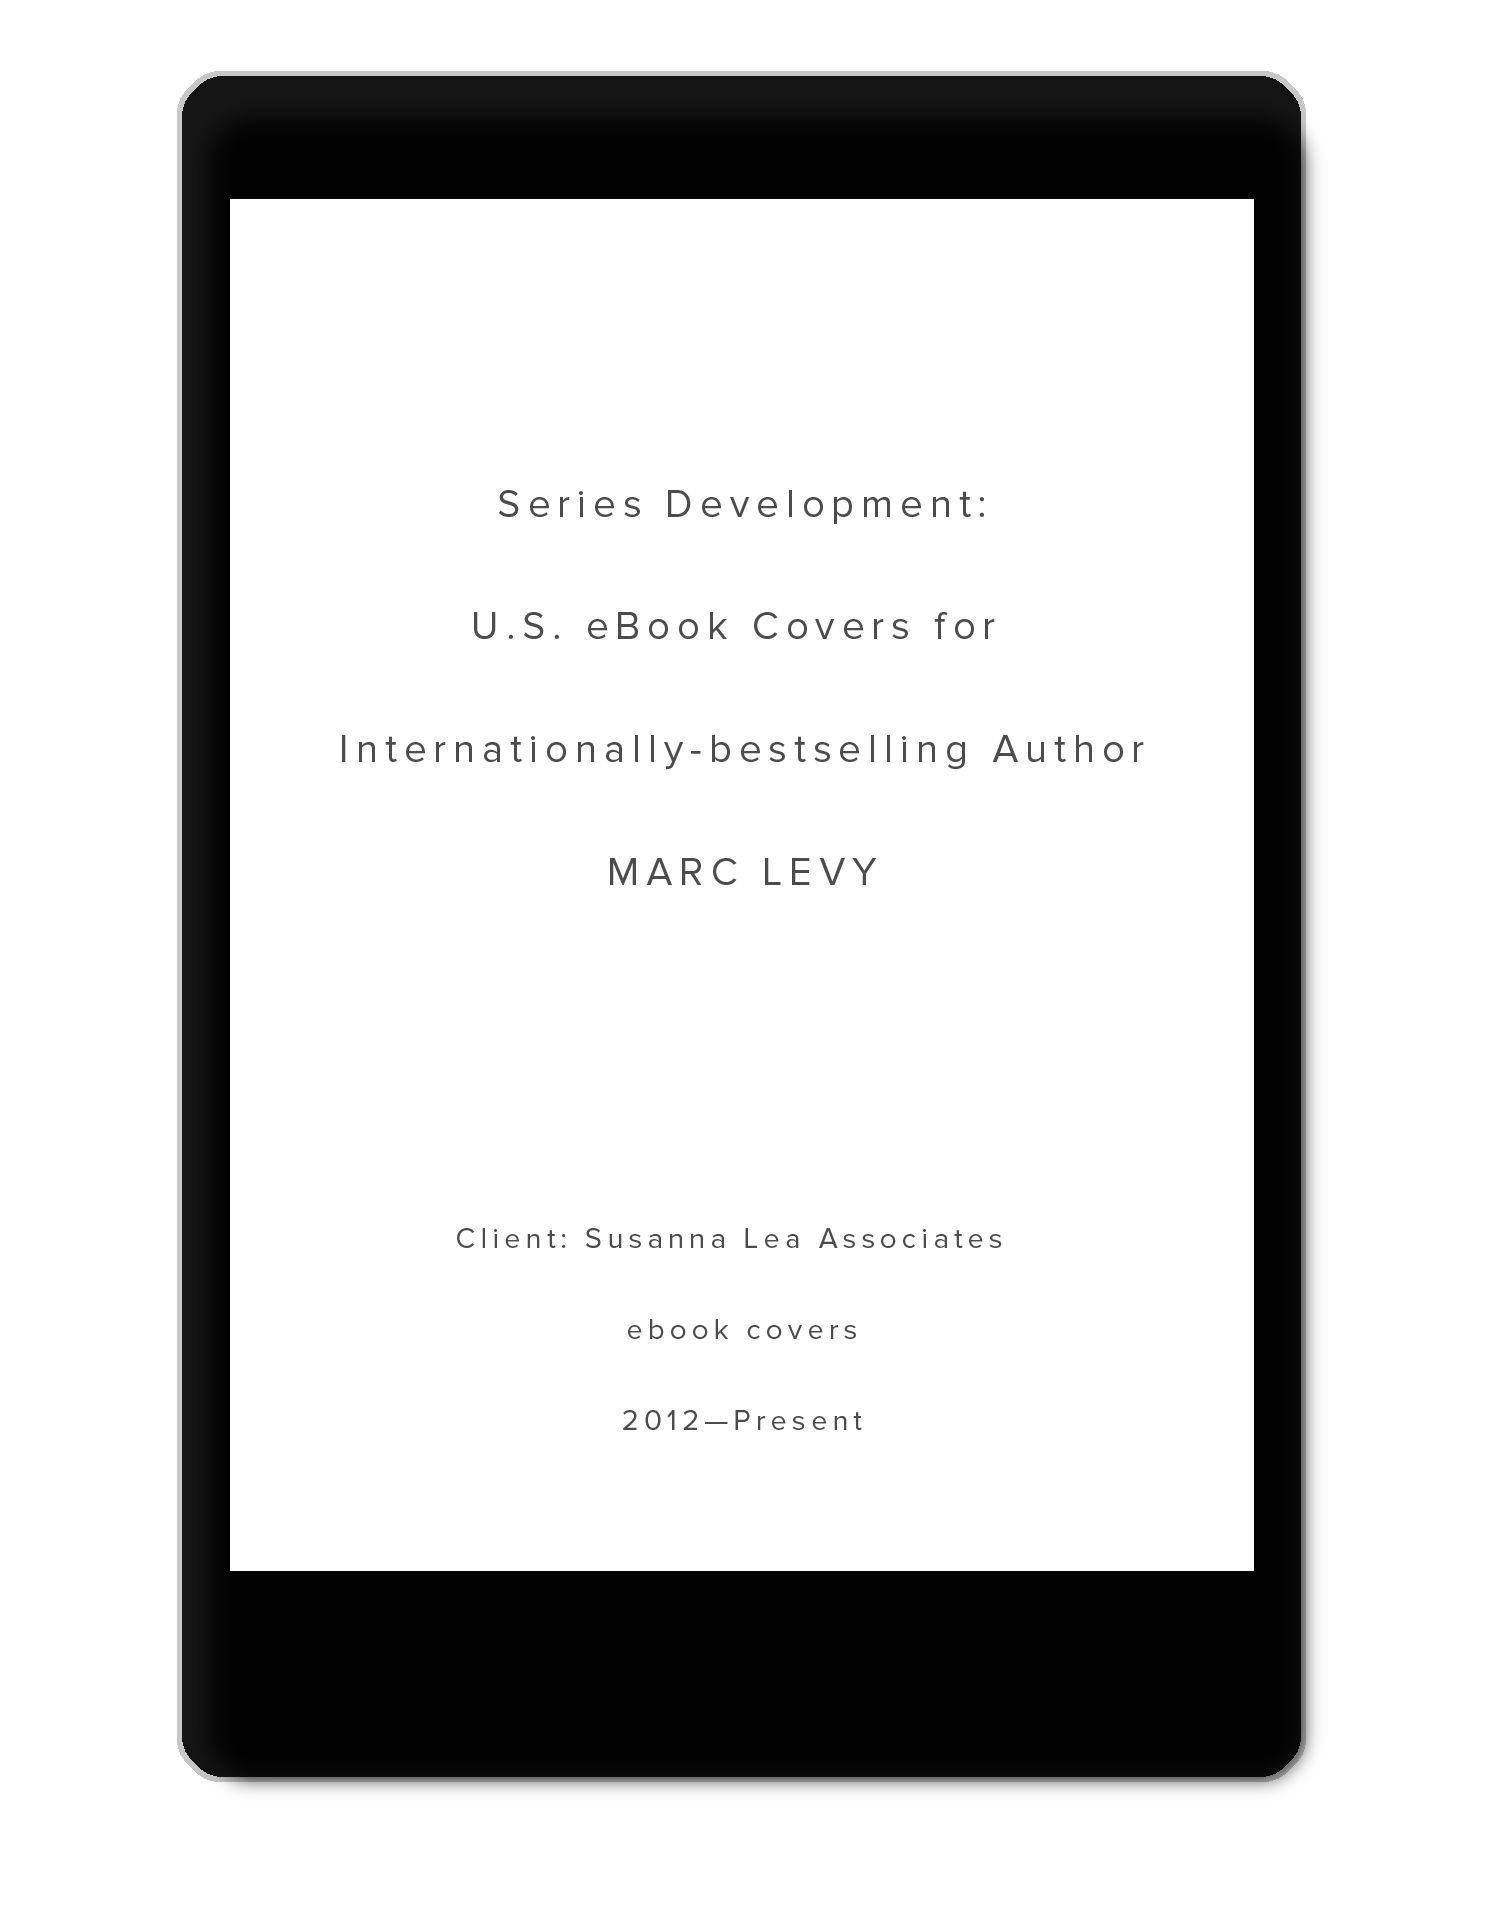 MARC-LEVY-text-ss6.jpg